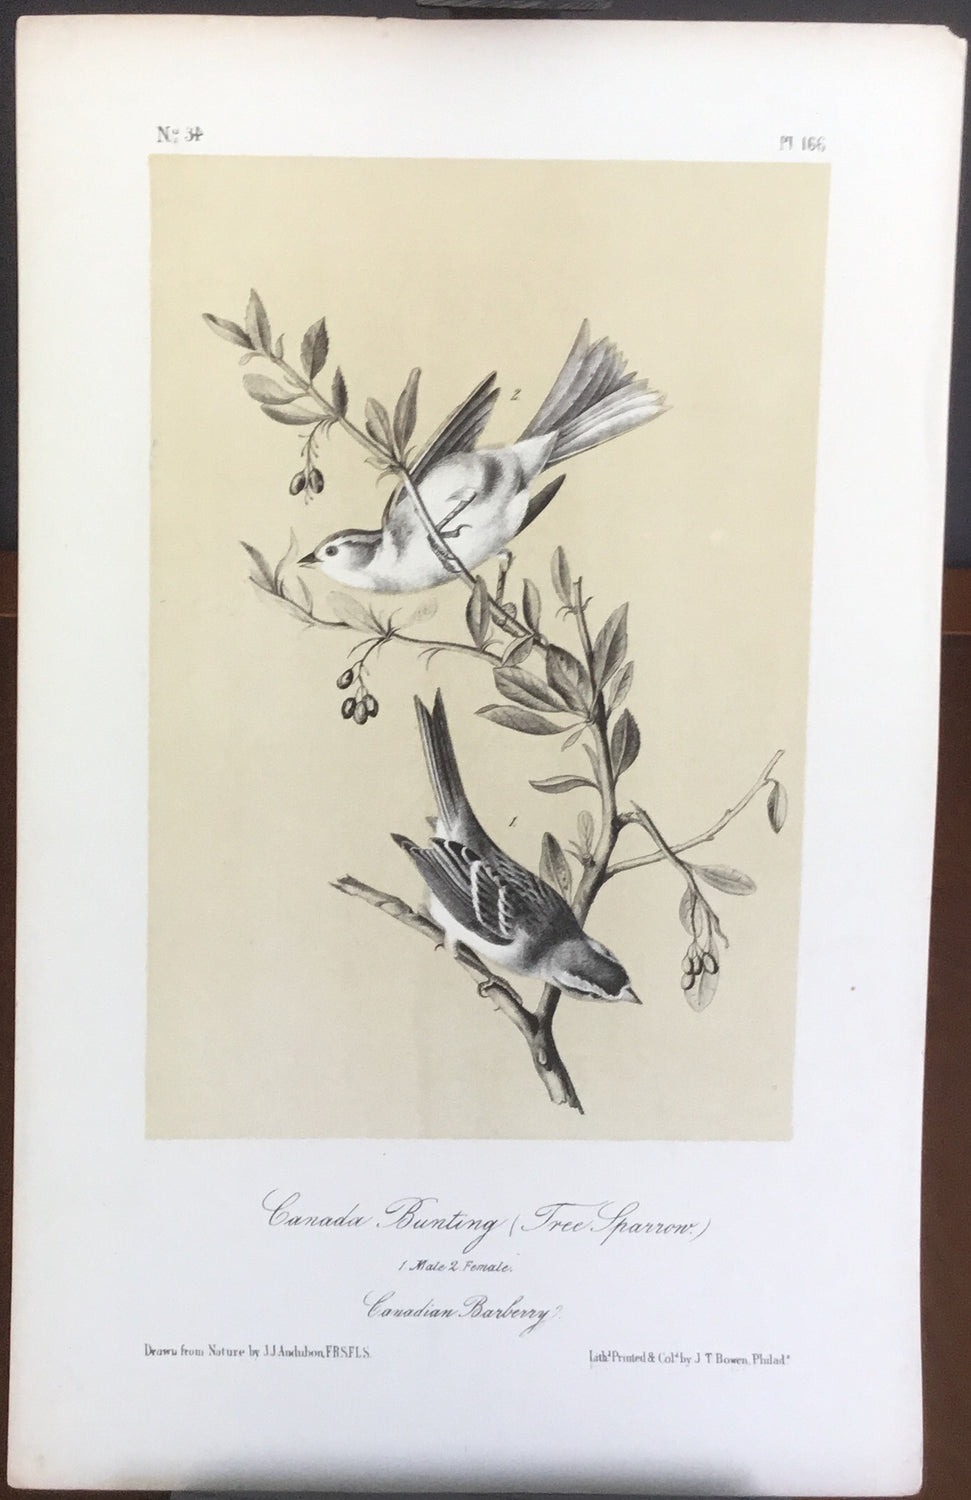 Audubon Canada Bunting and Tree Sparrow (2), plate 166, uncolored test sheet, 7 x 11